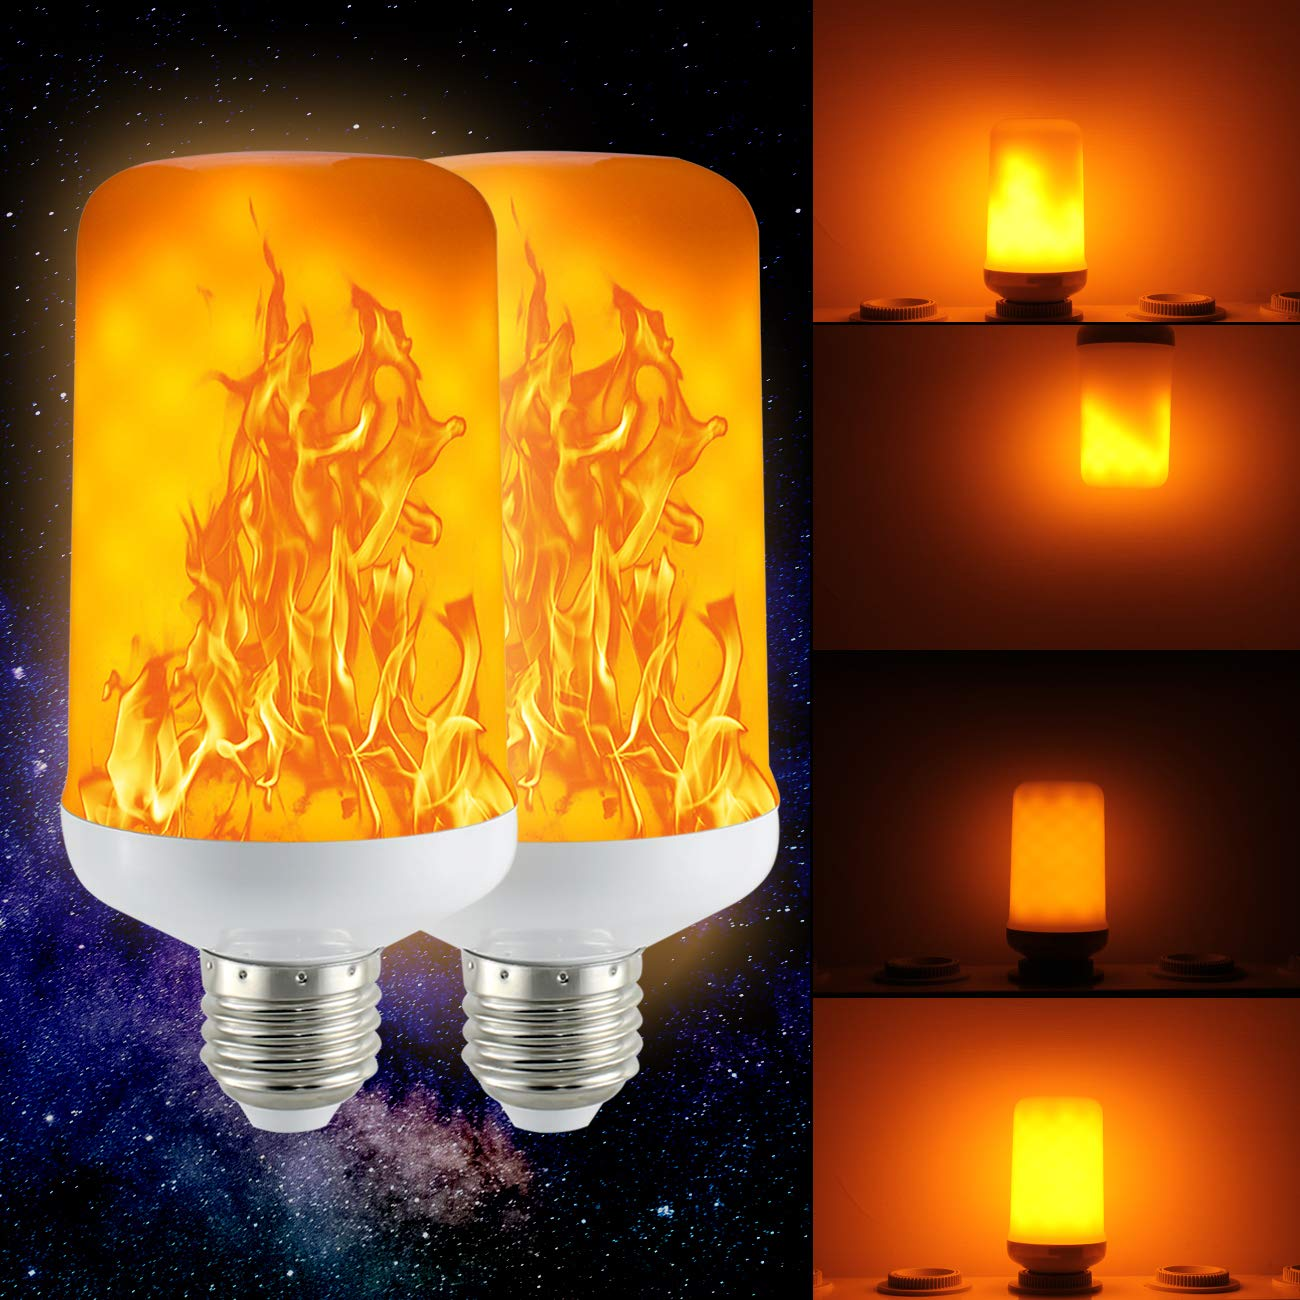 Led Flame Effect.2 Pack Golspark Led Flame Effect Light Bulb 7 Watt Standard E26 Base Flickering Fire Light Halloween Christmas Holiday Atmosphere Decorative